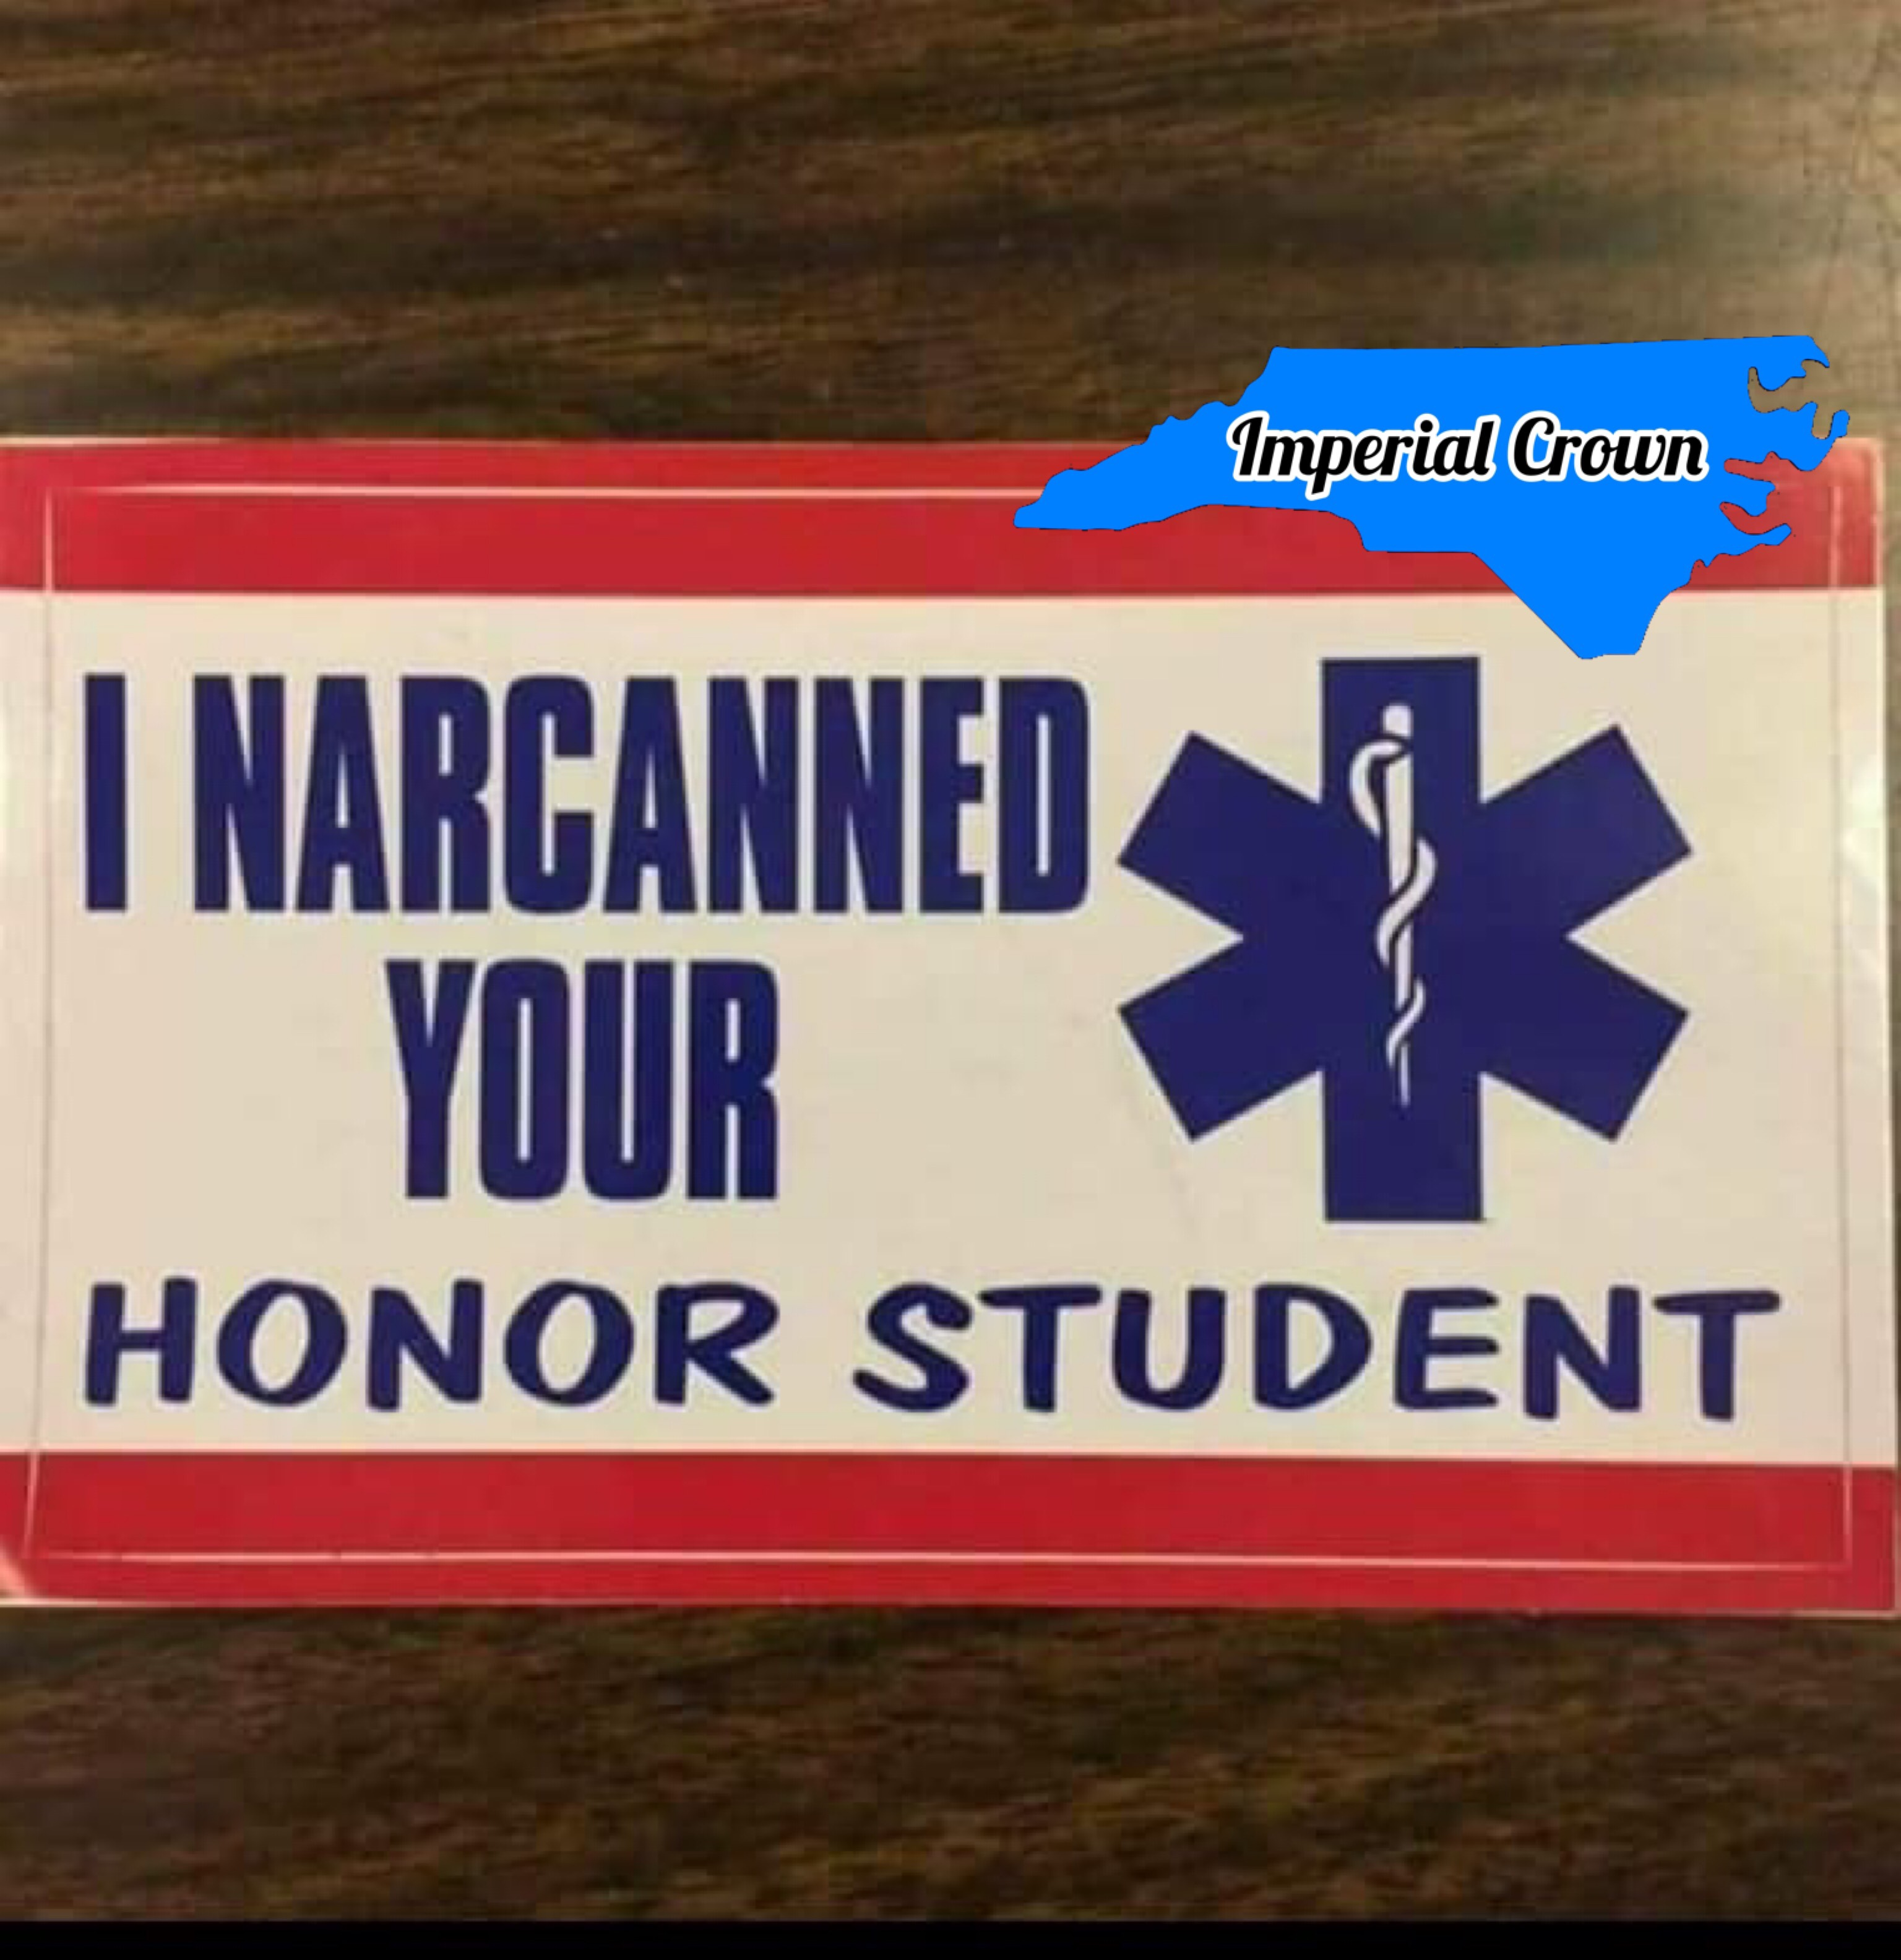 I narcanned your honor…….